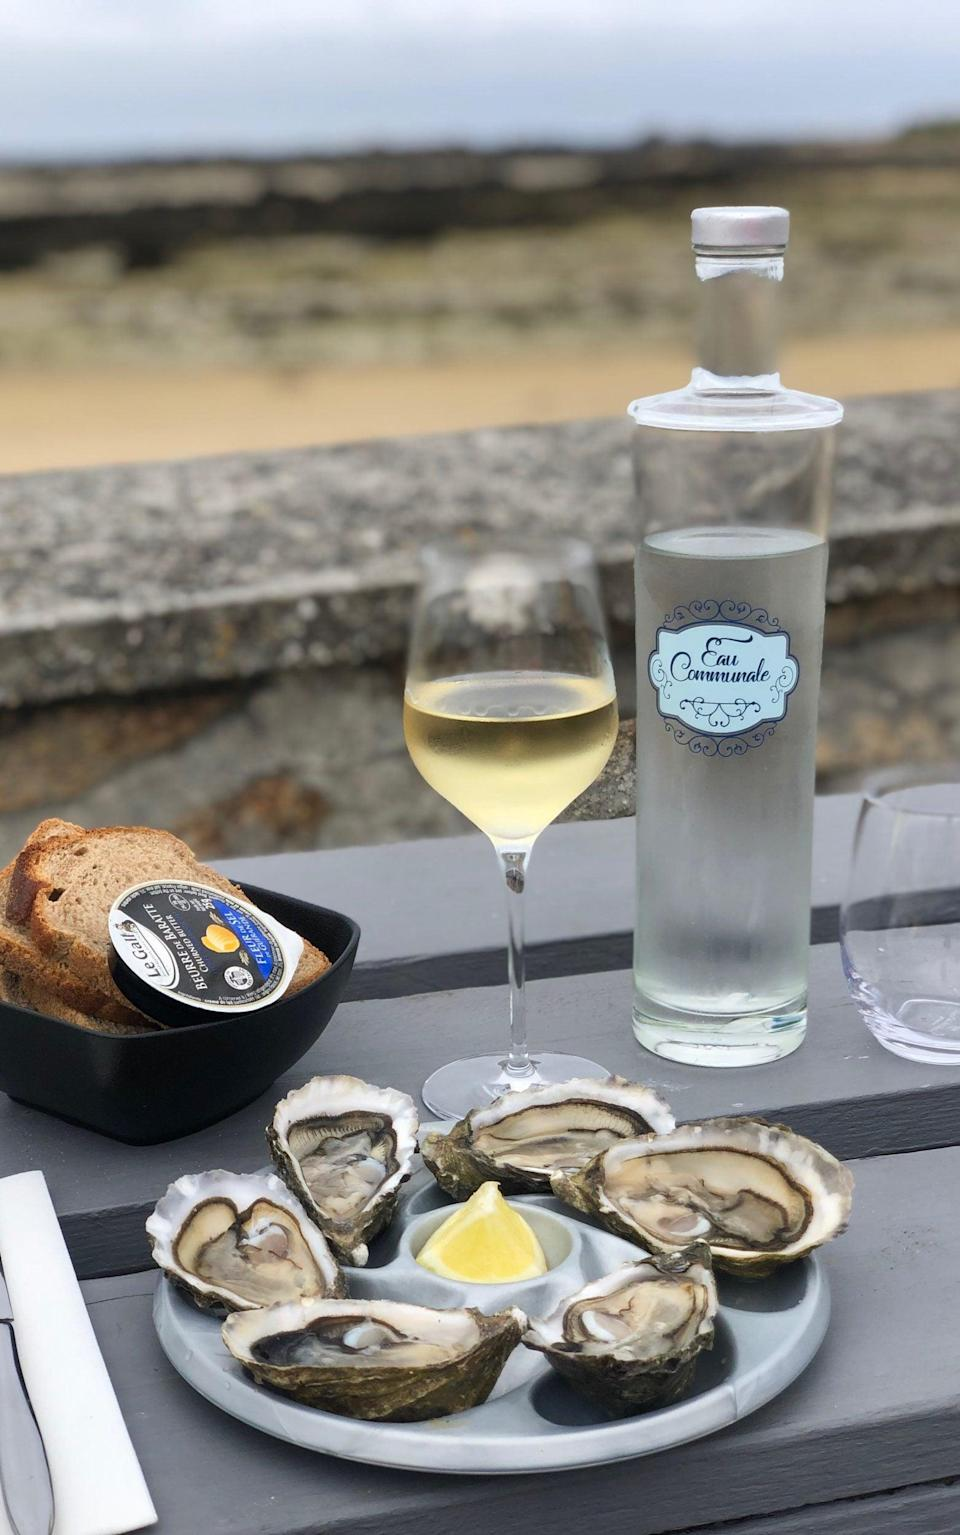 Oysters and wine from Maison Legris - Nicola Williams